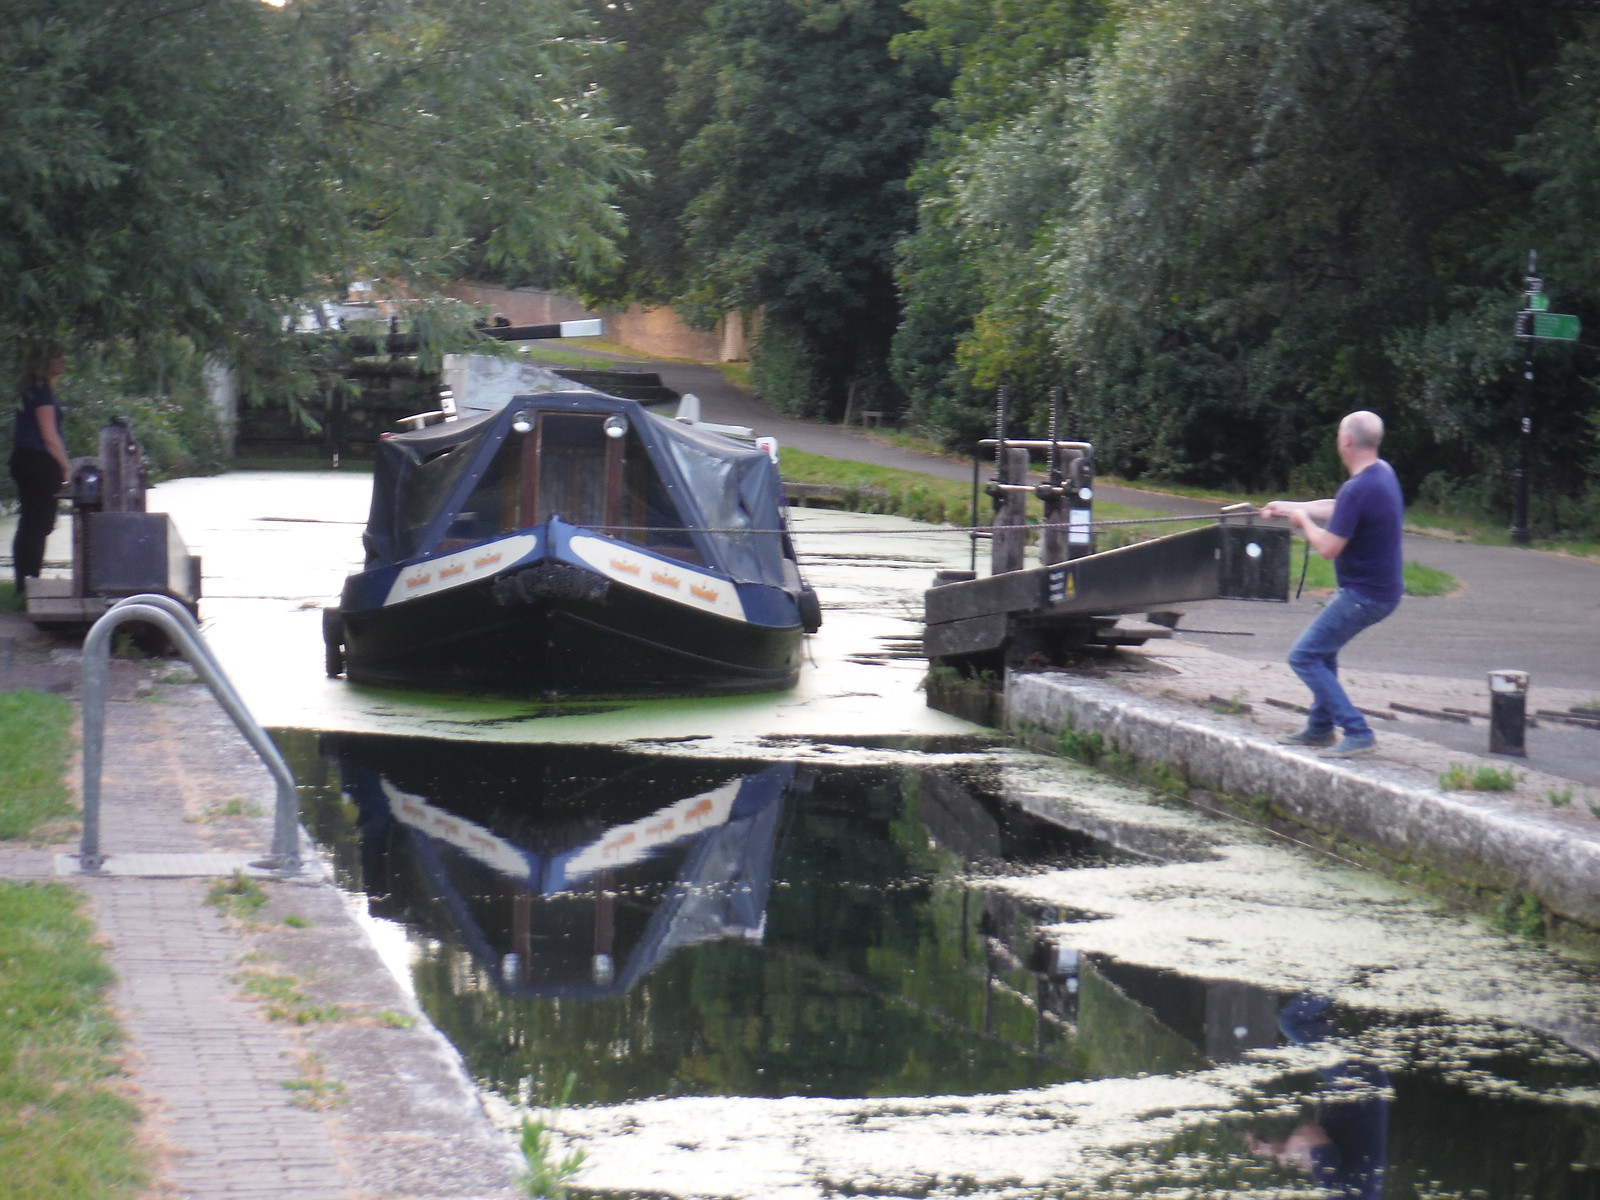 Hanwell Lock on Barges on River Brent/Grand Union Canal SWC Short Walk 22 - Boston Manor to Osterley